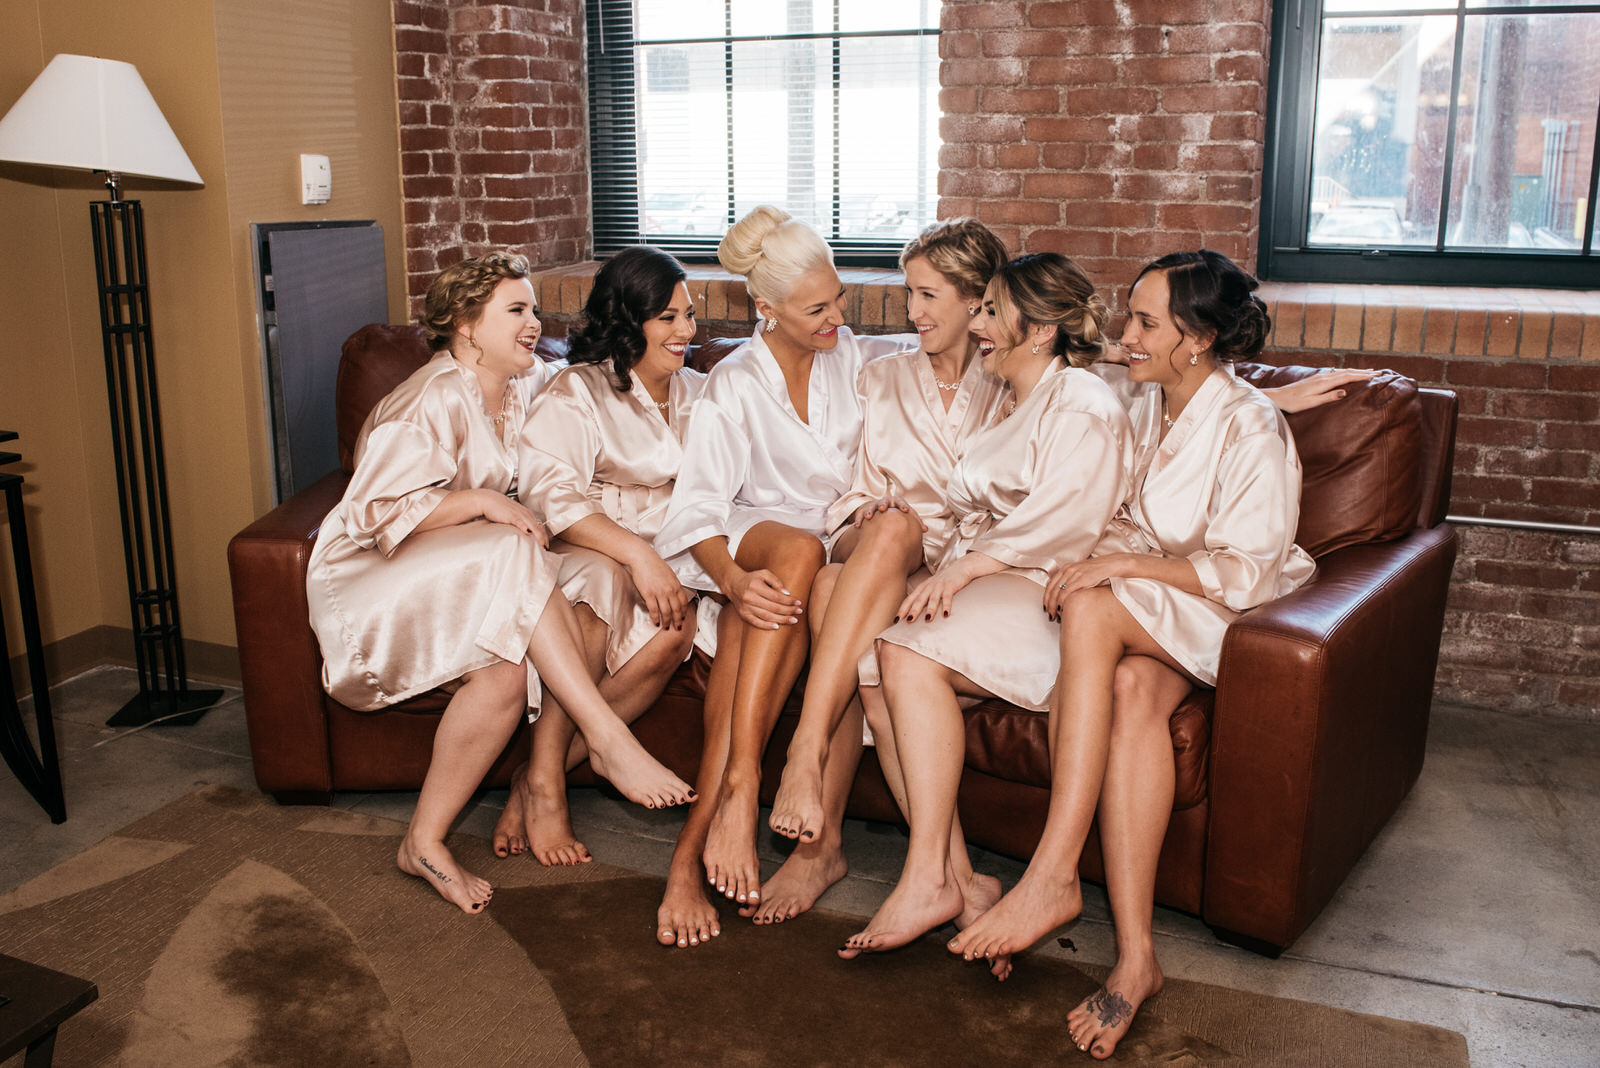 hilton_garden_inn_southpointe_pittsburgh_weddings_19.jpg